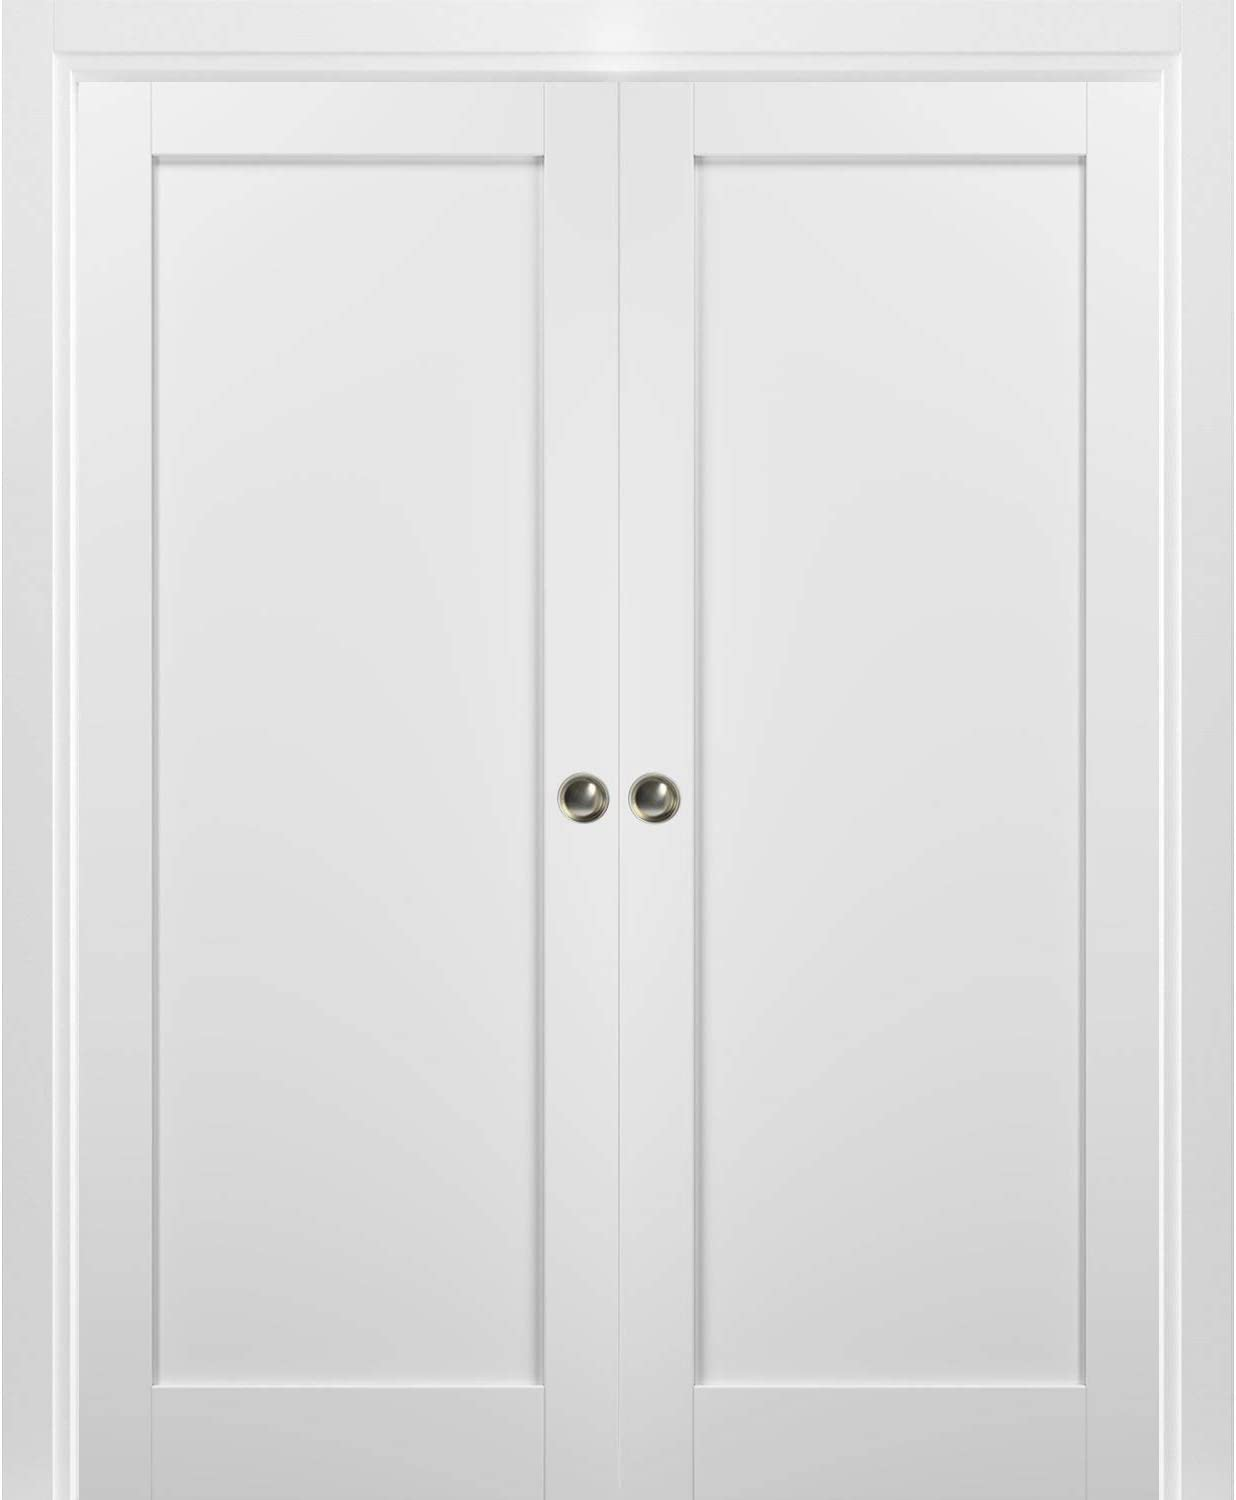 Kit Trims Rail Hardware Solid Wood Interior Pantry Kitchen Bedroom Sliding Closet Sturdy Door Quadro 4111 White Silk French Double Pocket Doors 36 x 80 with Frames